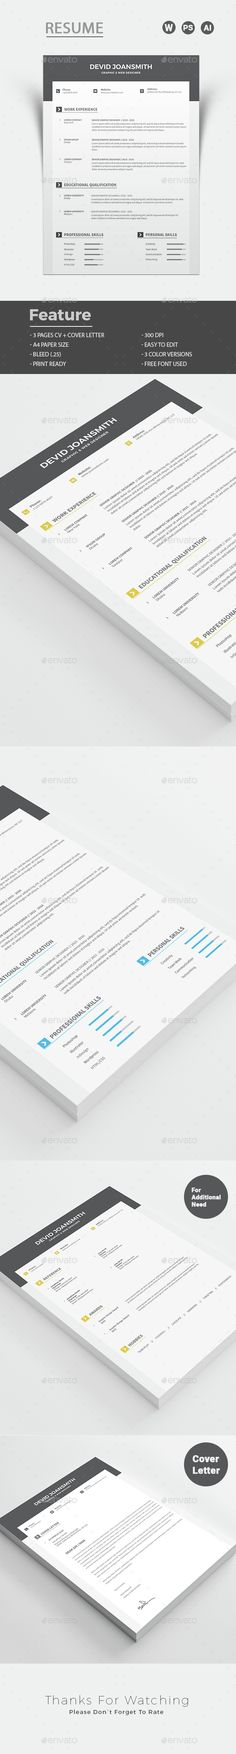 resume psd template professional resume cv download https